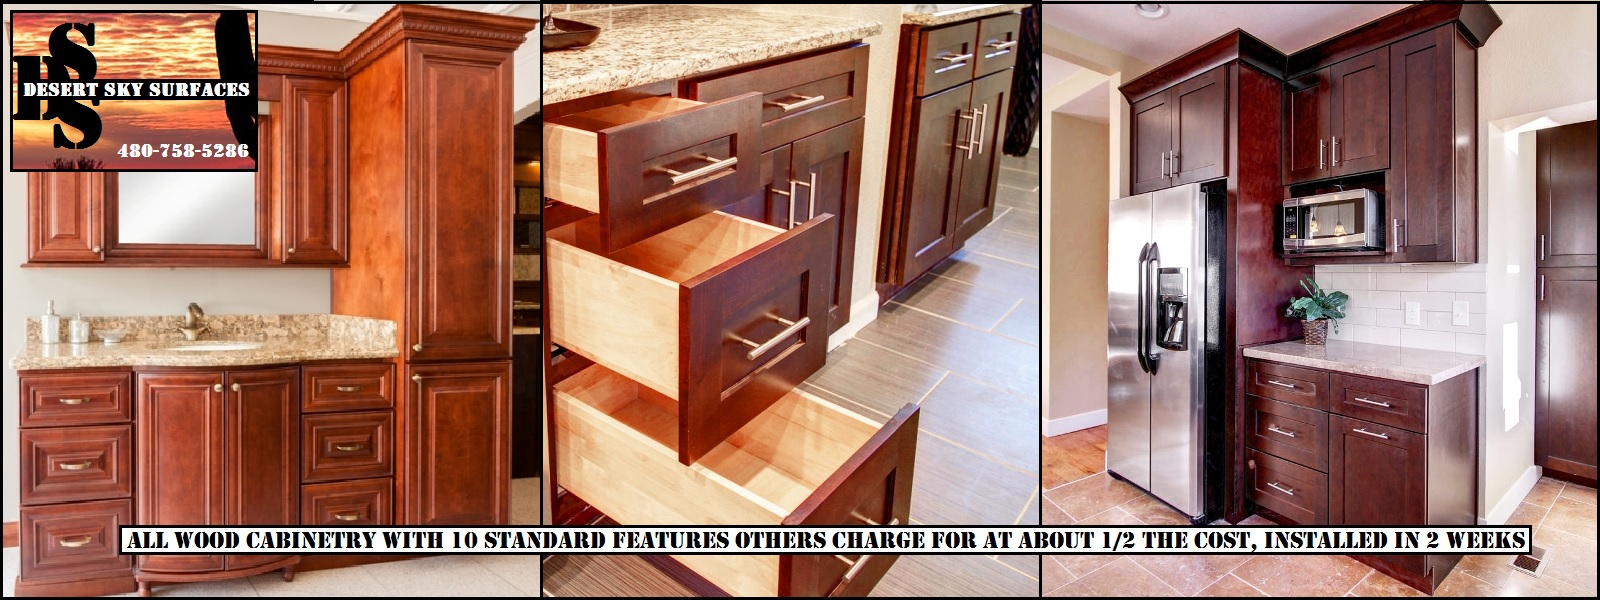 Affordable Quality all wood JK Kitchen Bath Cabinets Mesa Gilbert Chandler AZ